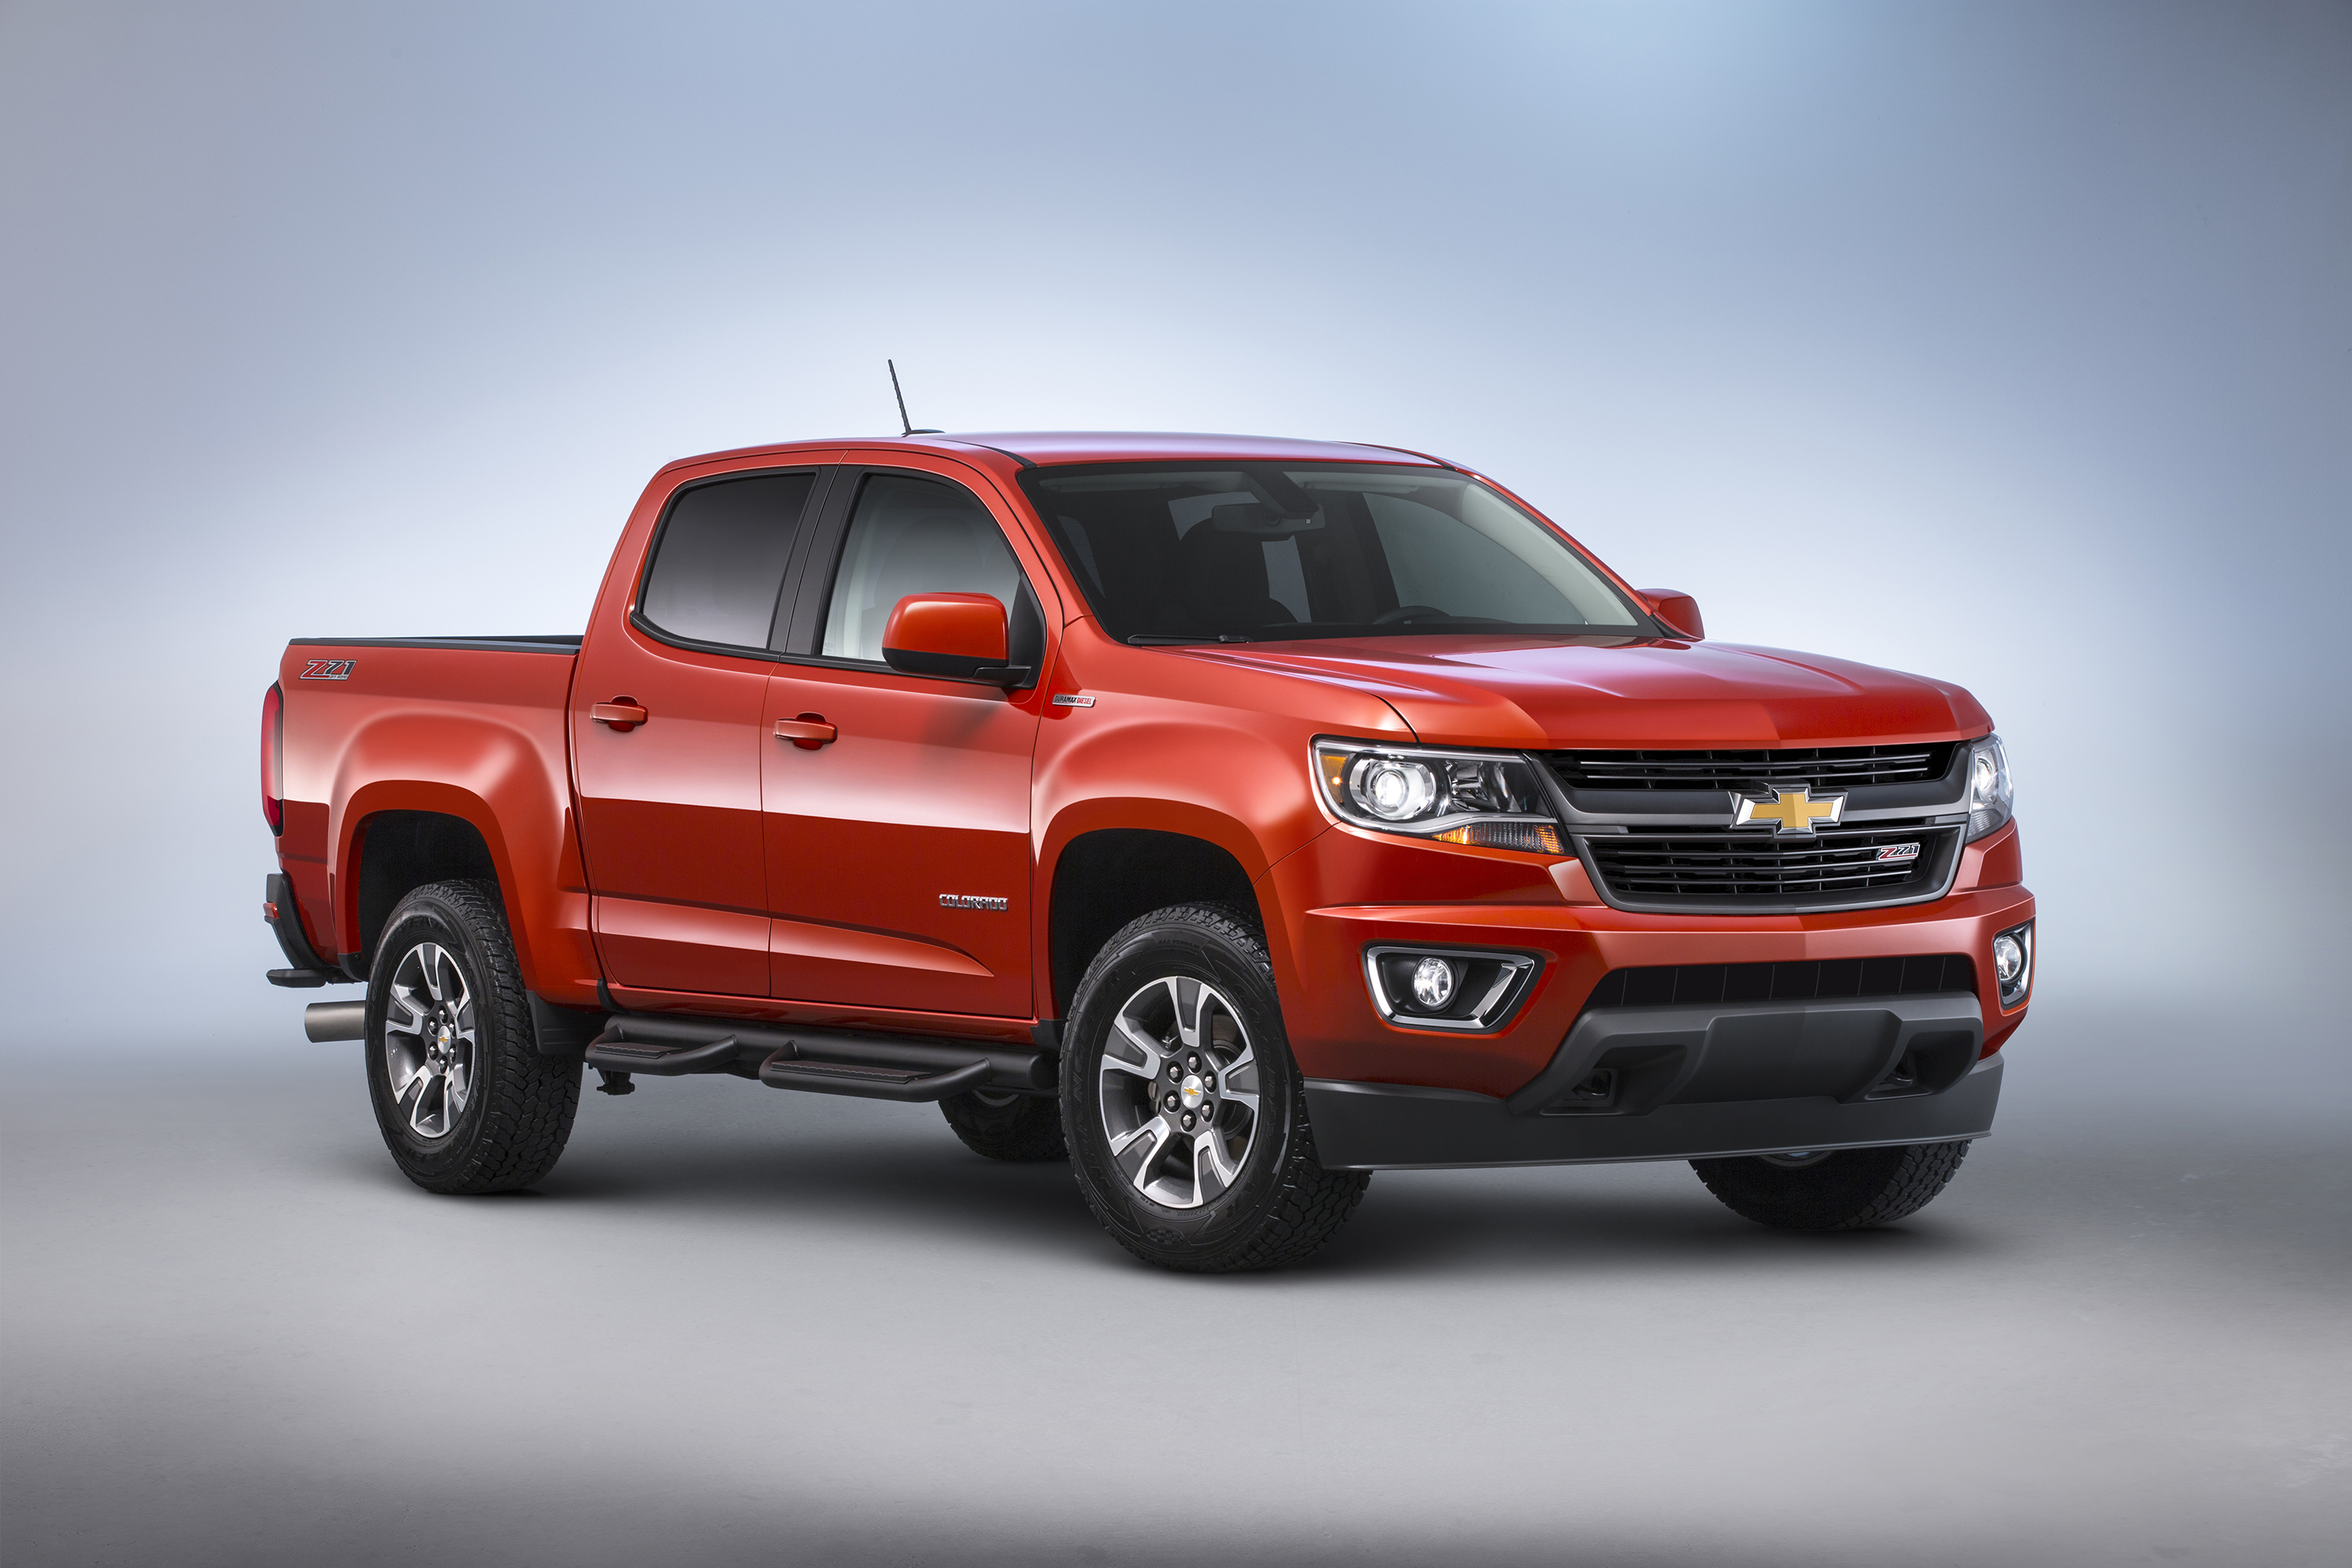 Chevrolet Colorado Diesel Canada s Most Fuel Efficient Pickup